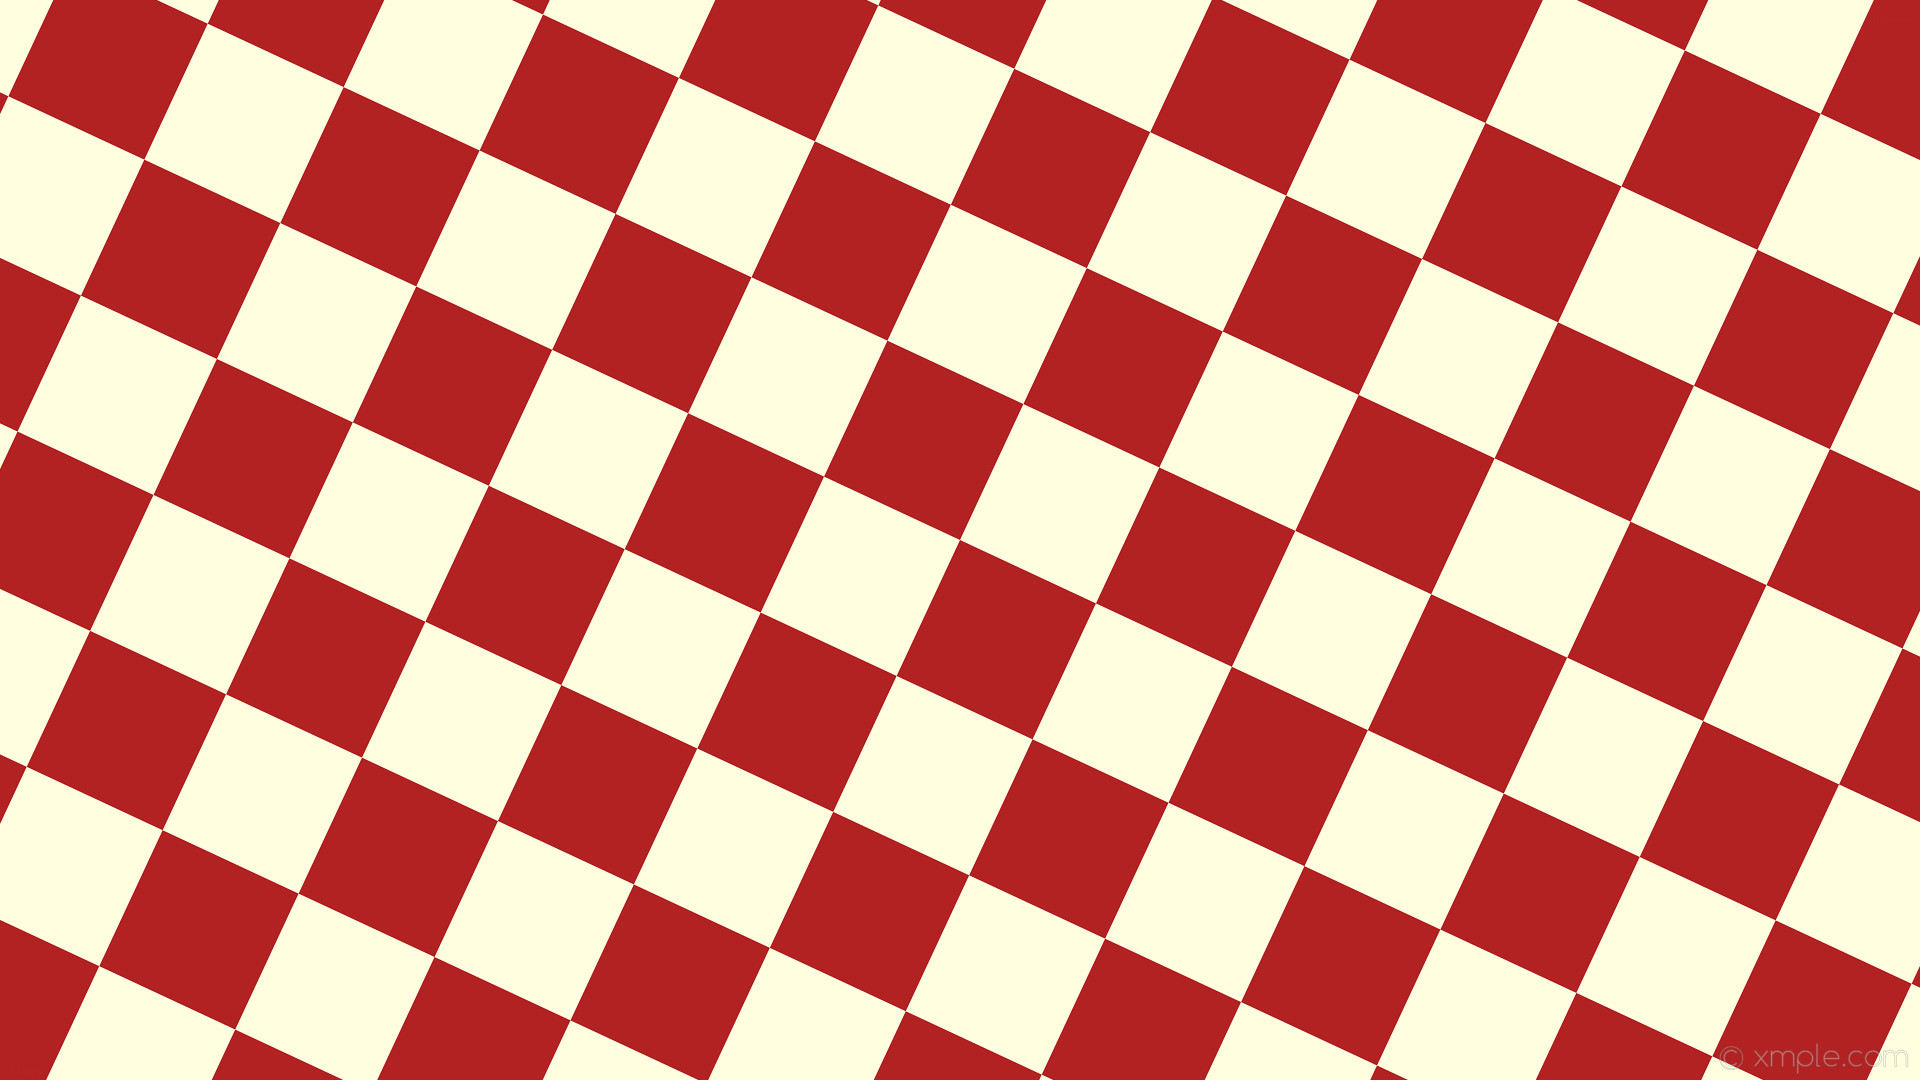 1920x1080 wallpaper red checkered yellow squares light yellow fire brick #ffffe0  #b22222 diagonal 65°